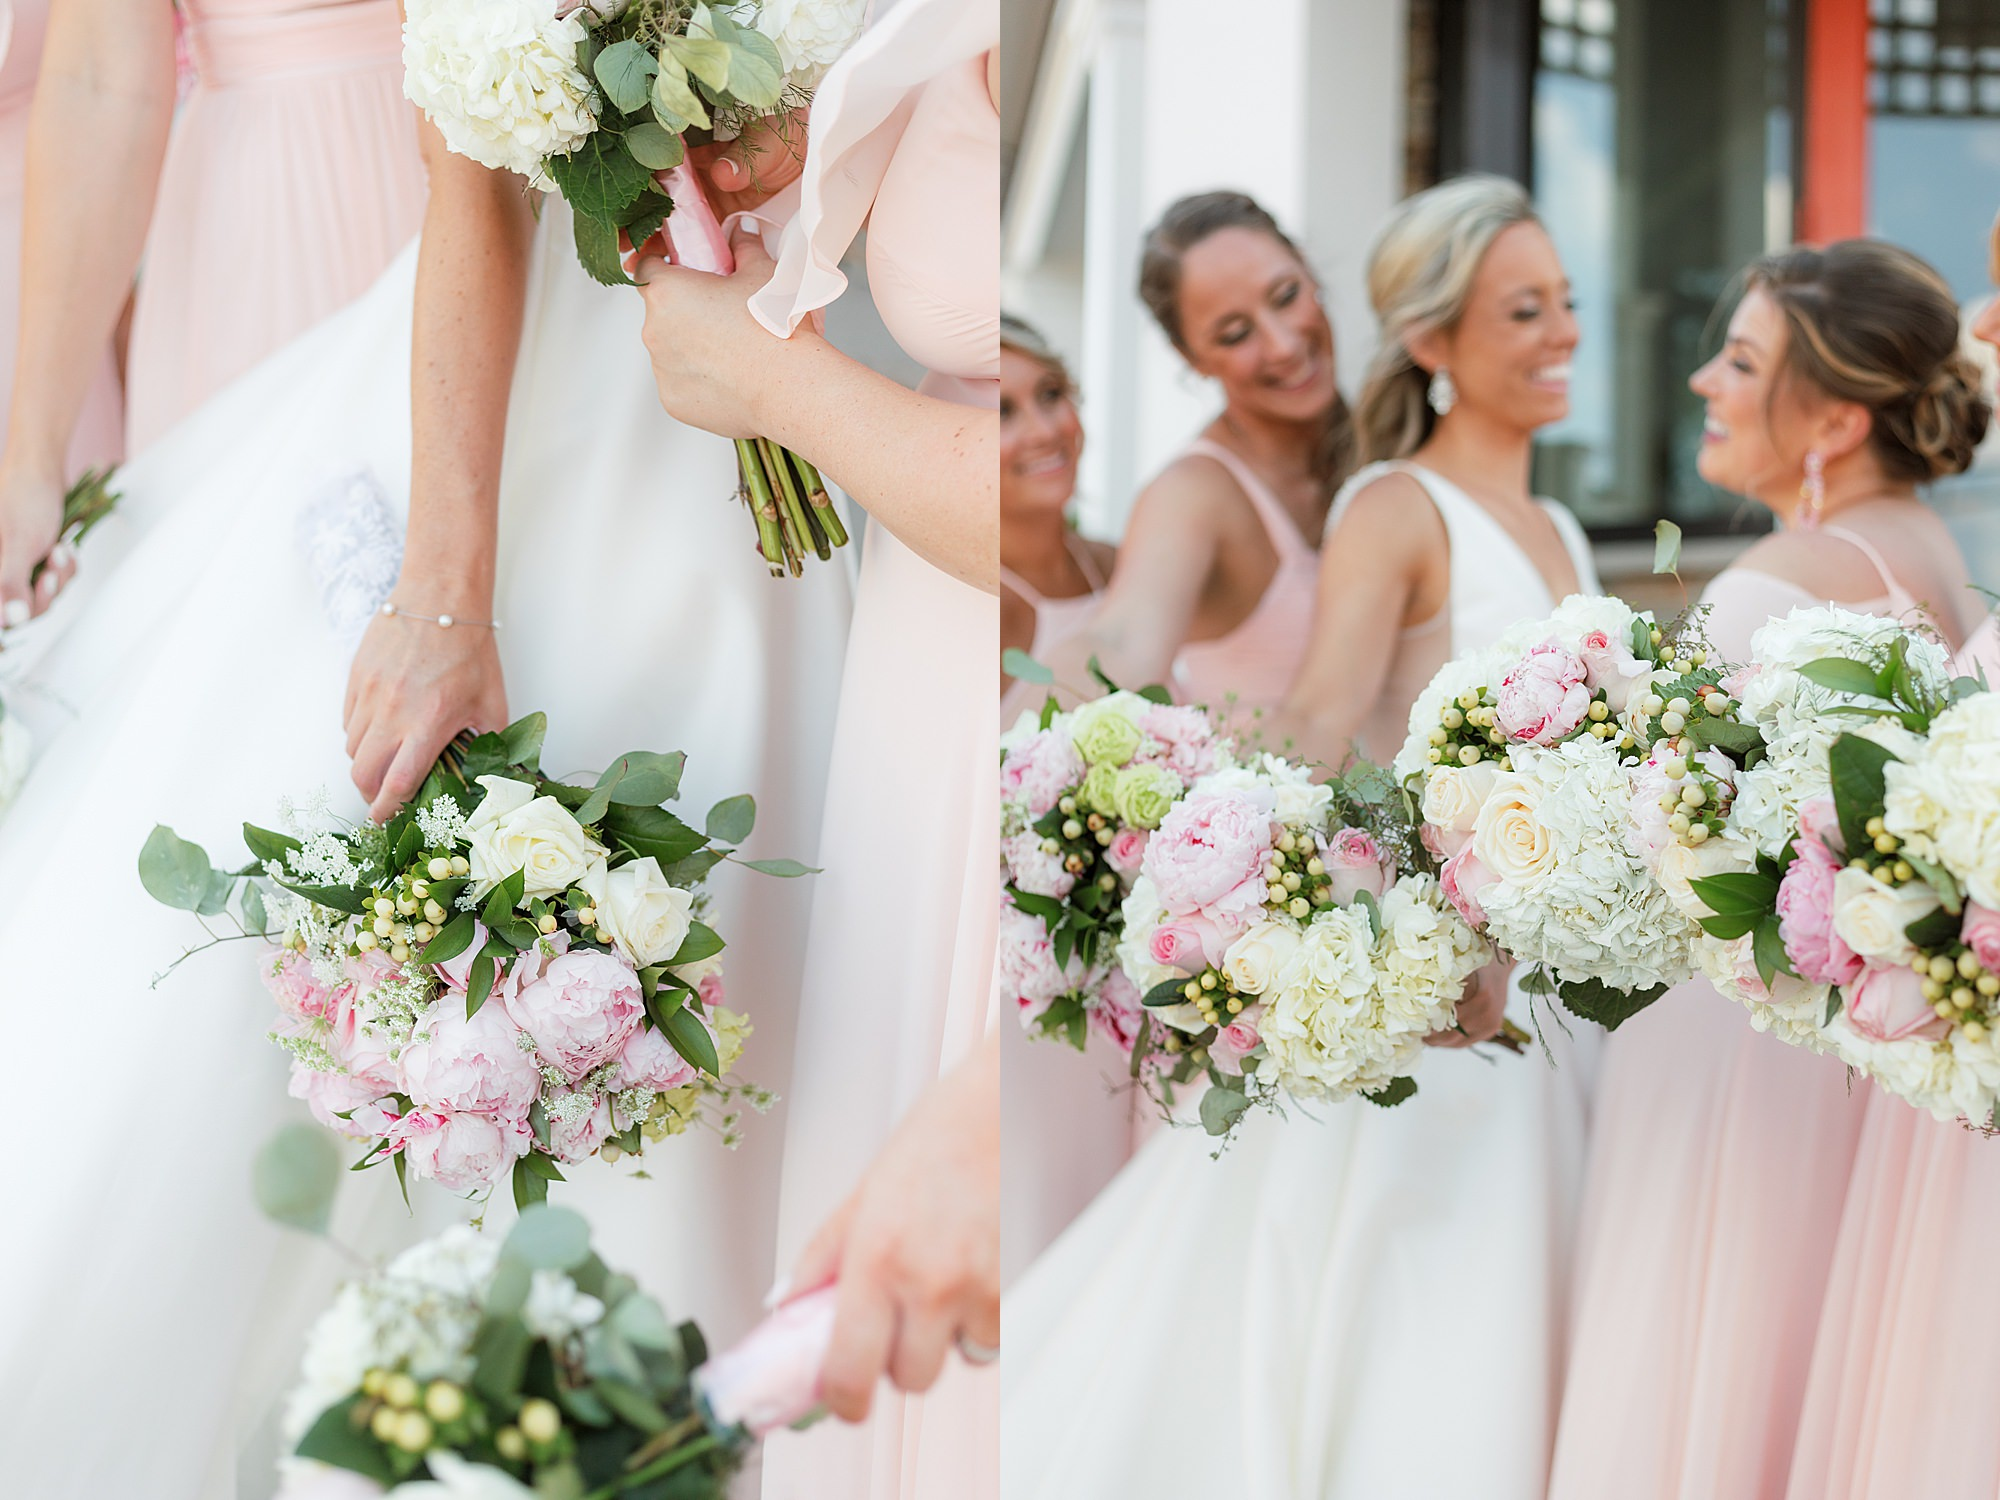 Natural and Vibrant Wedding Photography at the Reeds in Stone Harbor NJ by Magdalena Studios 0031